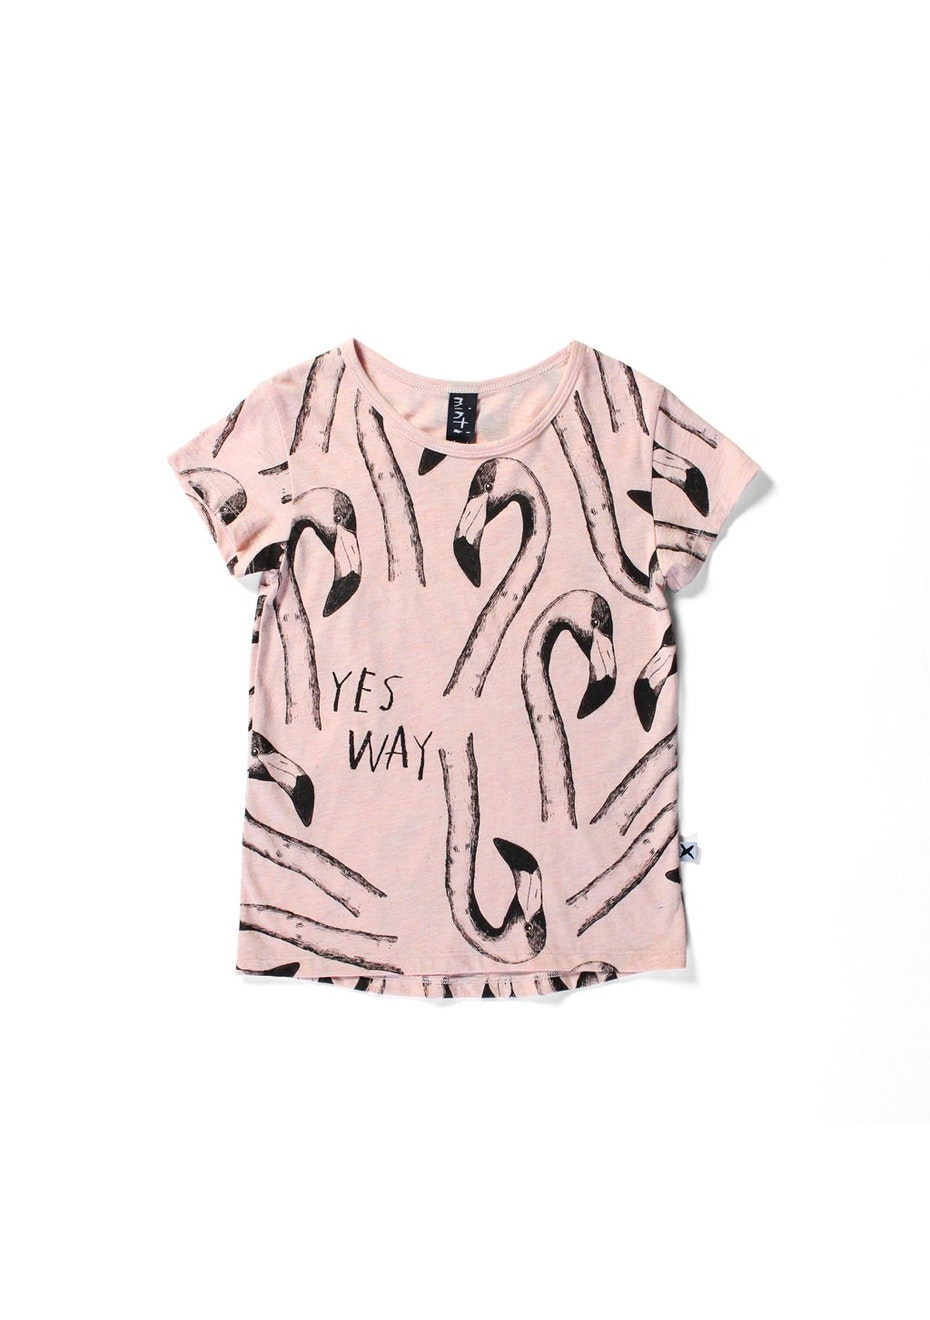 Minti - Flamingos -  Tee - Girls - Pink Marle